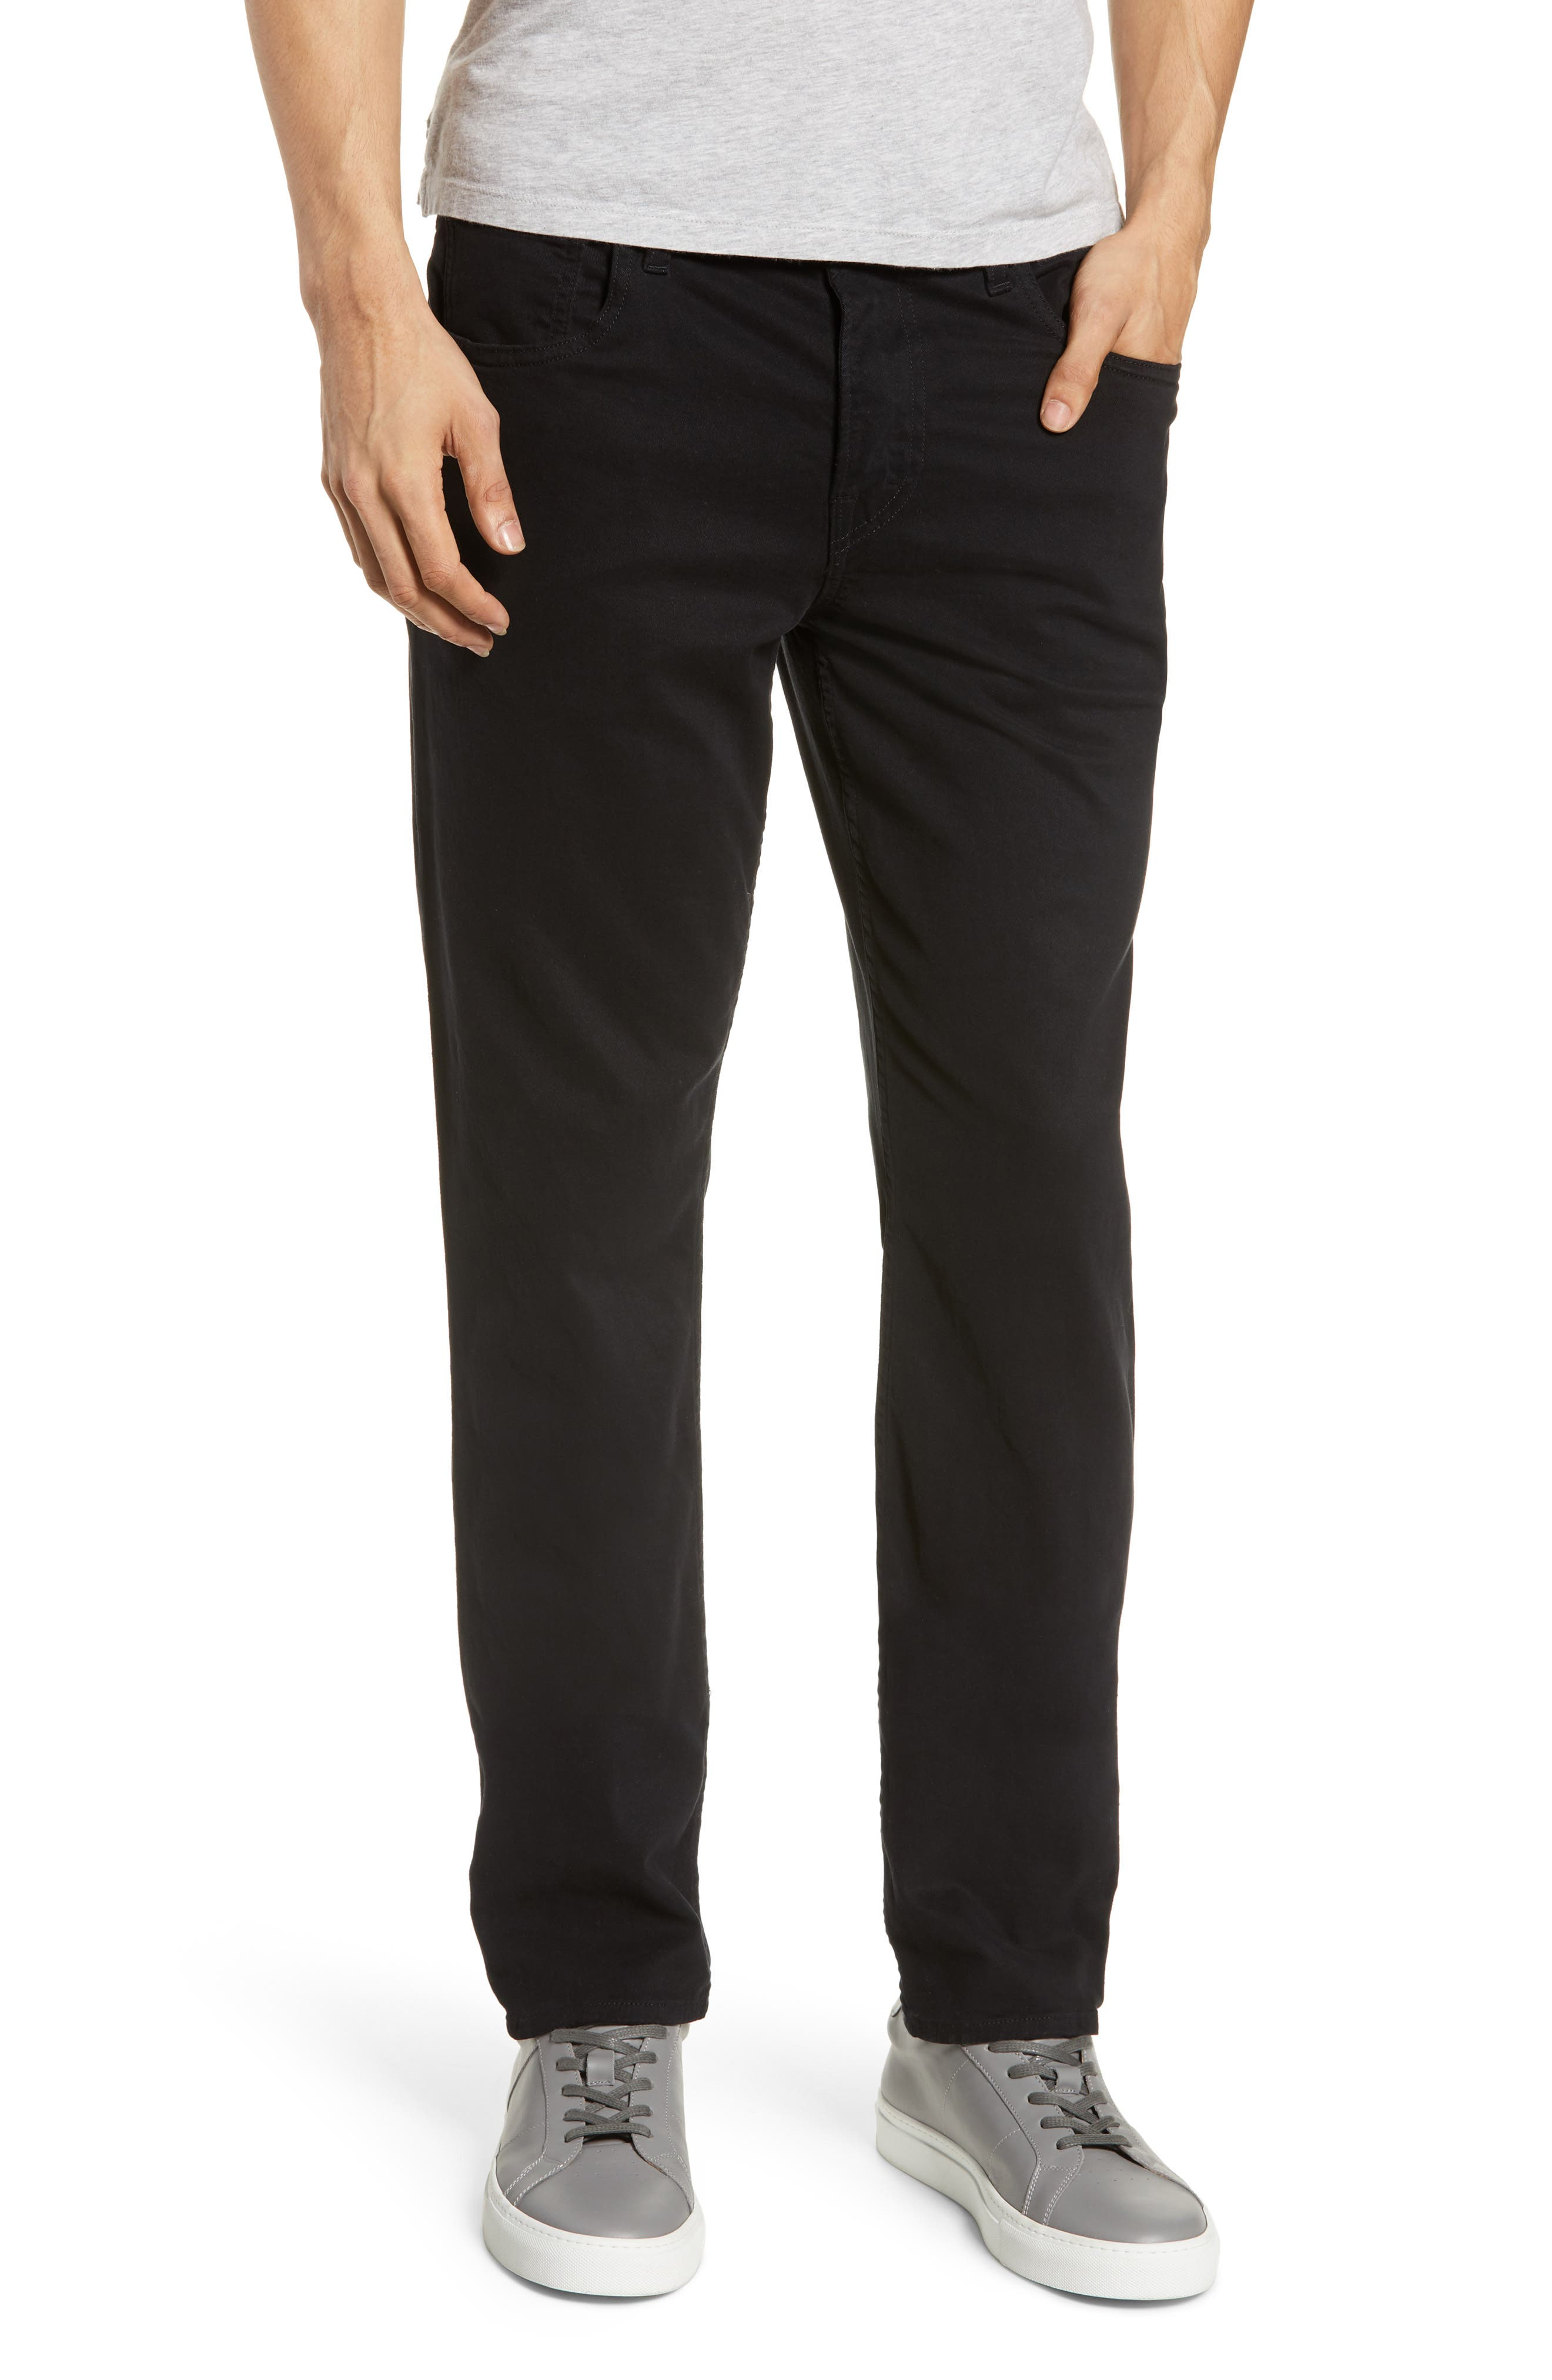 HUDSON JEANS, Blake Slim Fit Jeans, Main thumbnail 1, color, BLACK